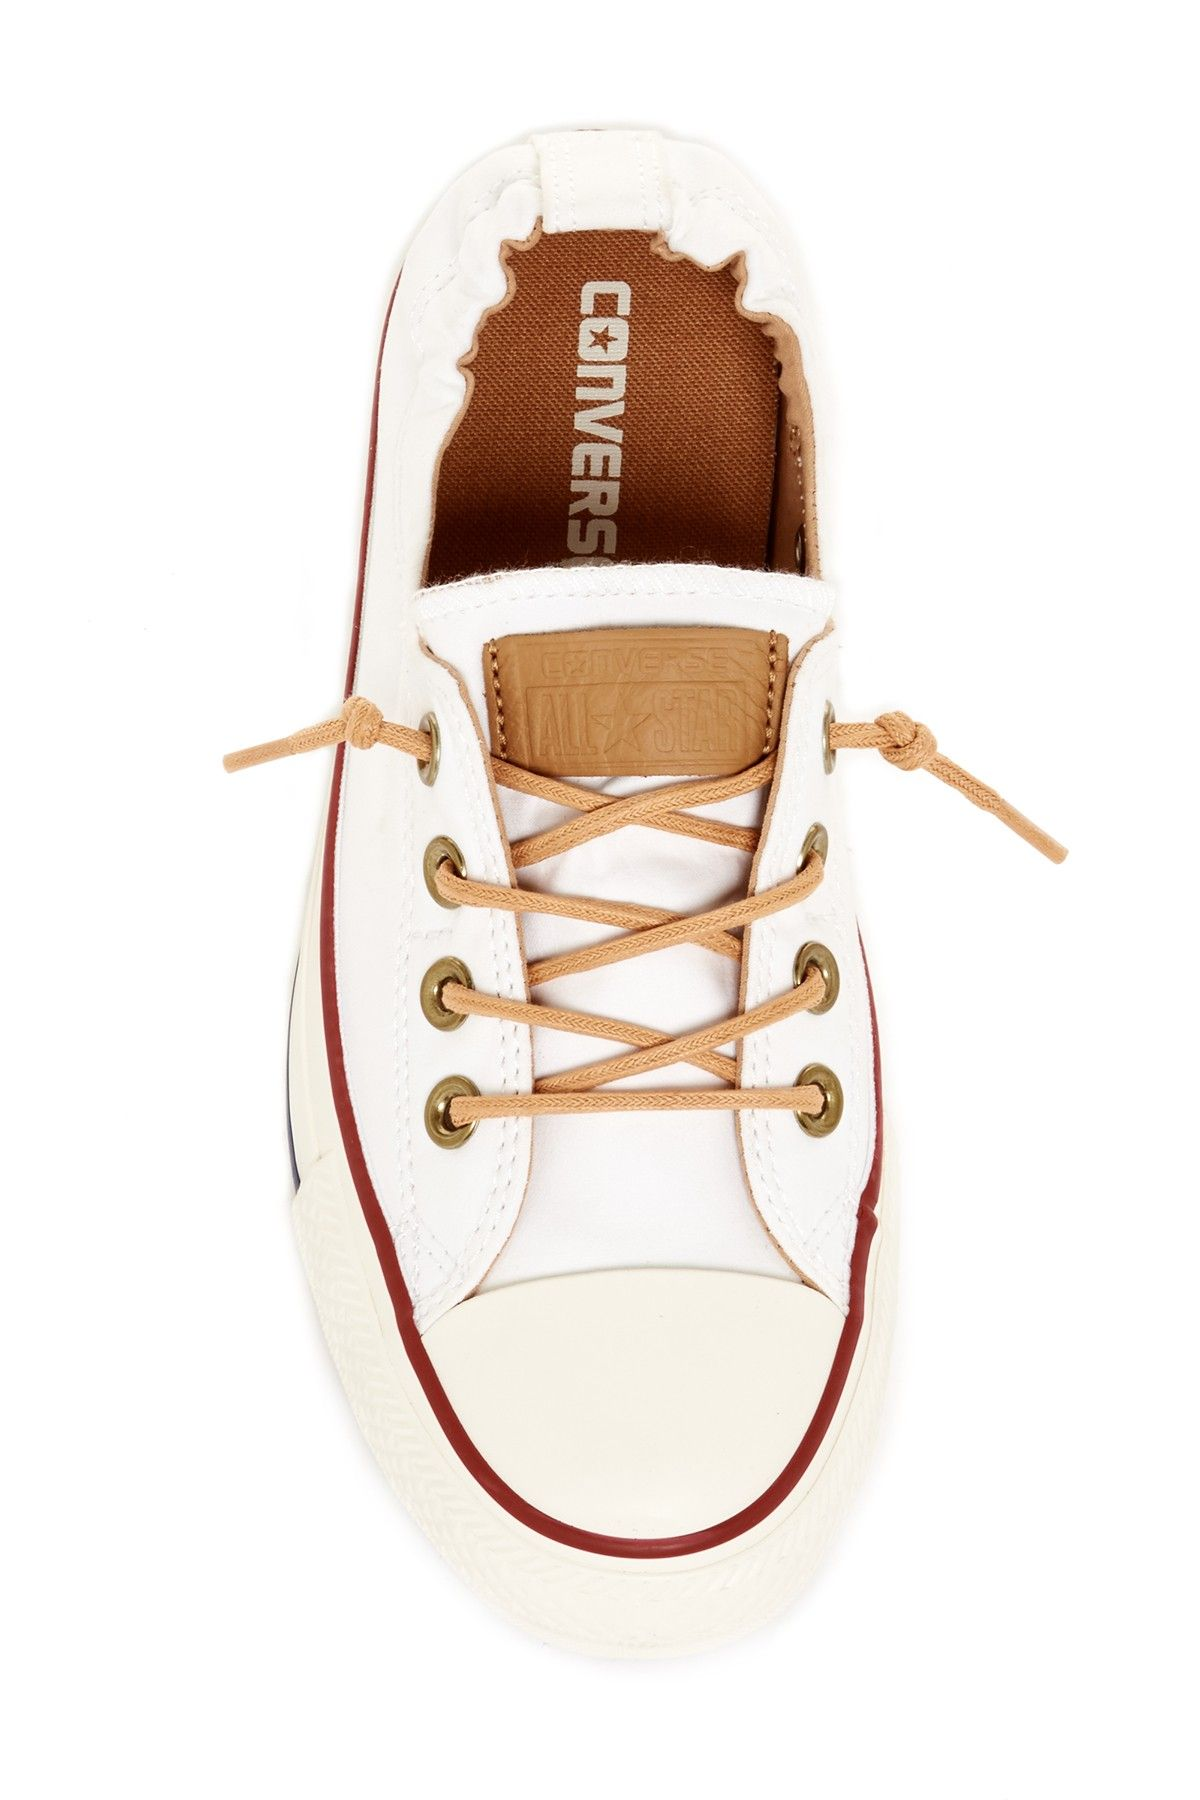 93574f86bea7 Converse - Chuck Taylor All Star Peached Shoreline Low Top Slip-On Sneaker.  Free Shipping on orders over  100.